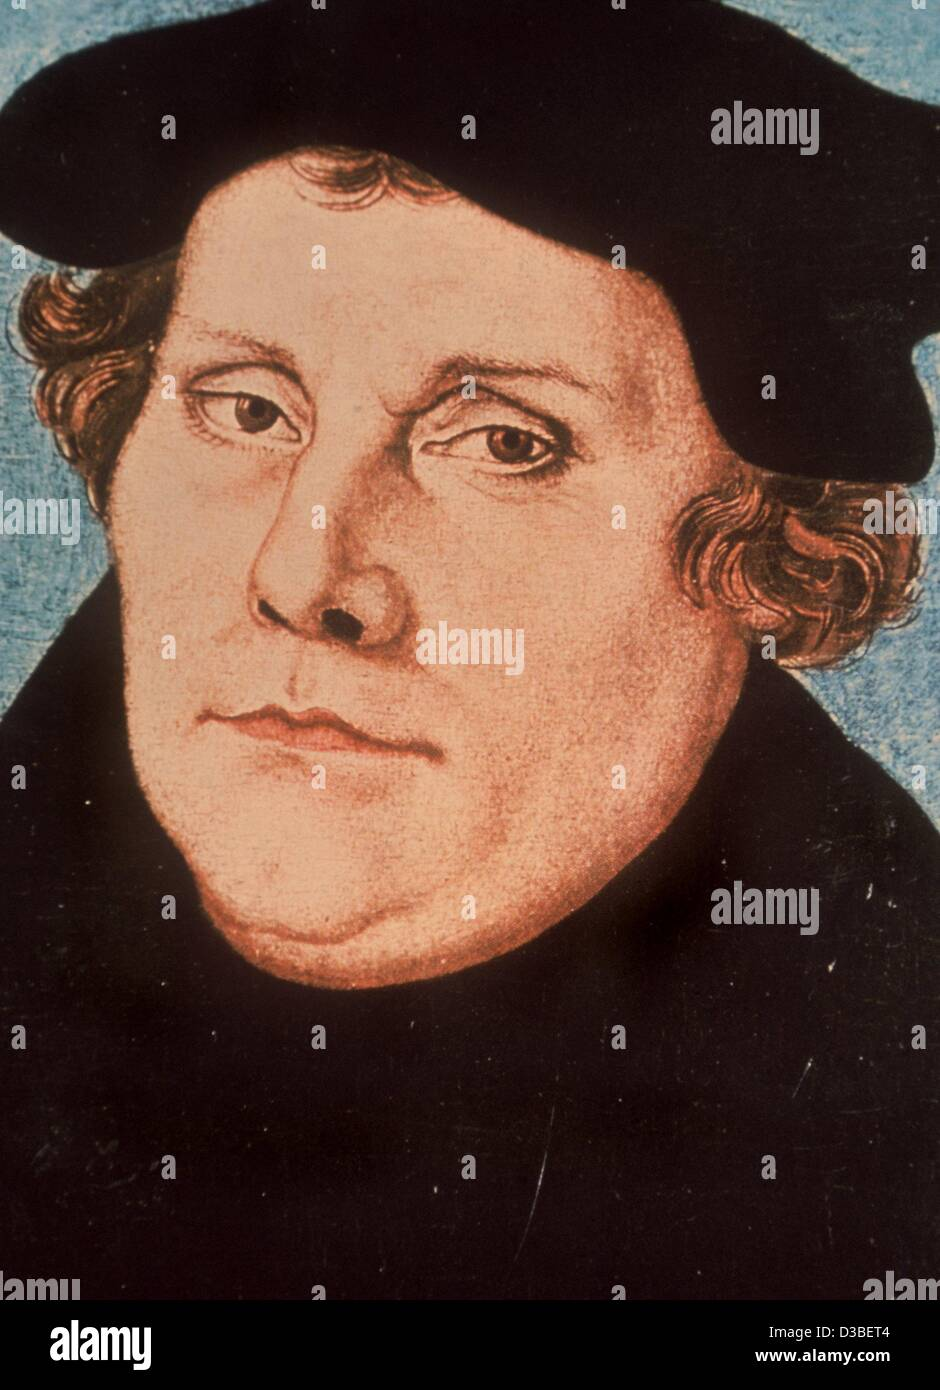 (dpa files) - Reformer Martin Luther, painted by Lucas Cranach the Elder. Starting 1920, Cranach and his workshop - Stock Image